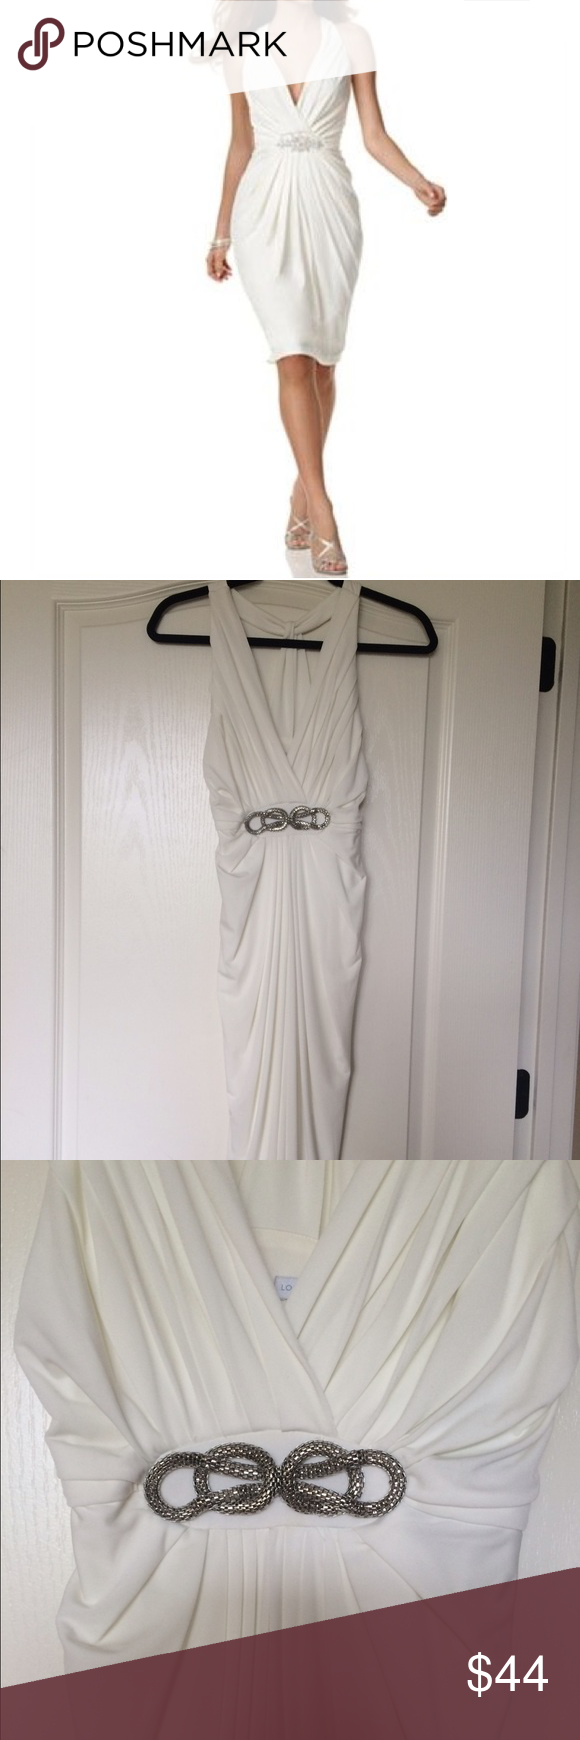 White apron macy's -  Reduced White Cocktail Dress Macy S London Times Soft White Dress With Silver Knot Embellishment